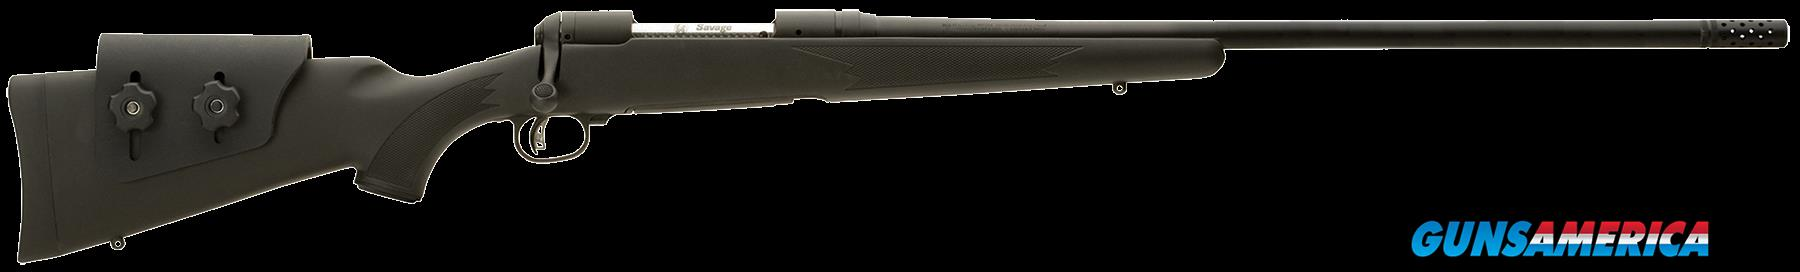 "Savage 18899 11/111 Long Range Hunter Bolt 300 Win Mag 26"" 3+1 Accustock Black Stk Black  Guns > Rifles > S Misc Rifles"